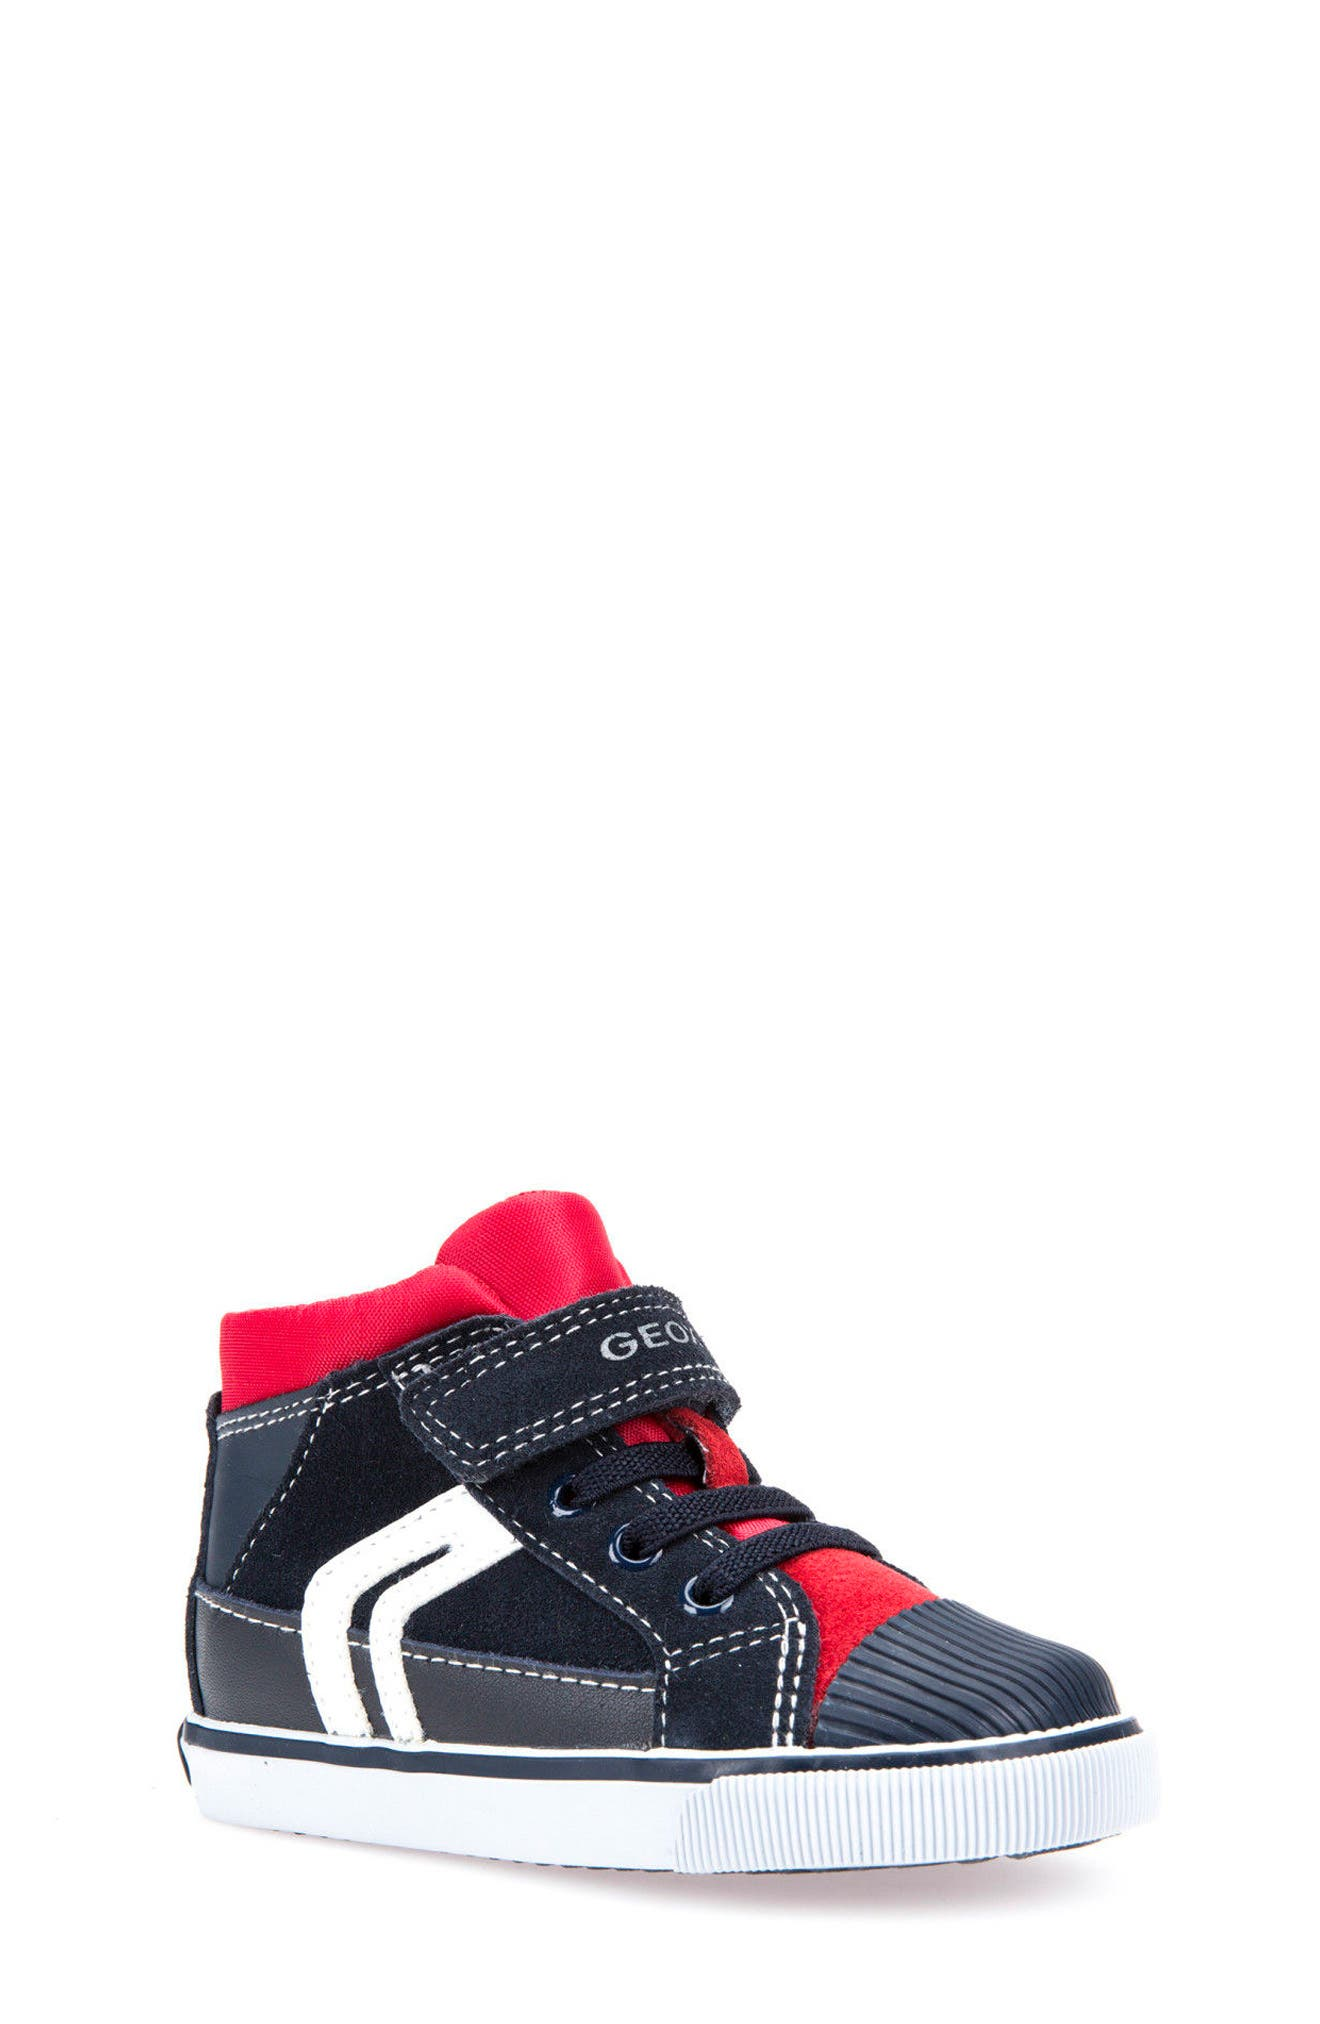 Geox Kiwi Boy High Top Sneaker (Walker & Toddler)